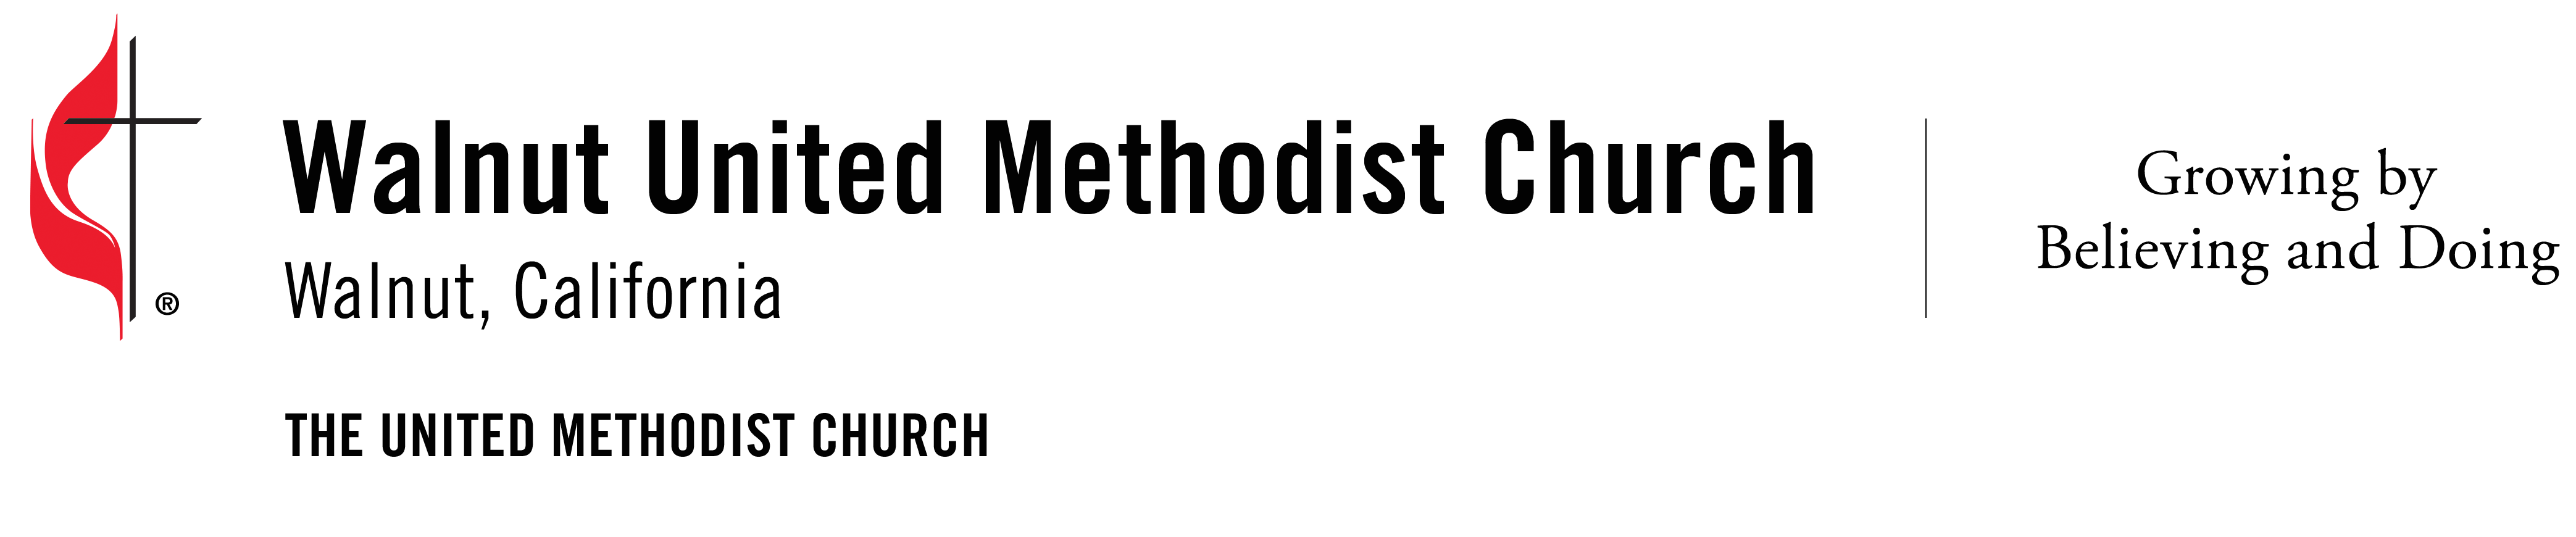 cropped-Walnut-UMC-logo-full-color-1-1.png